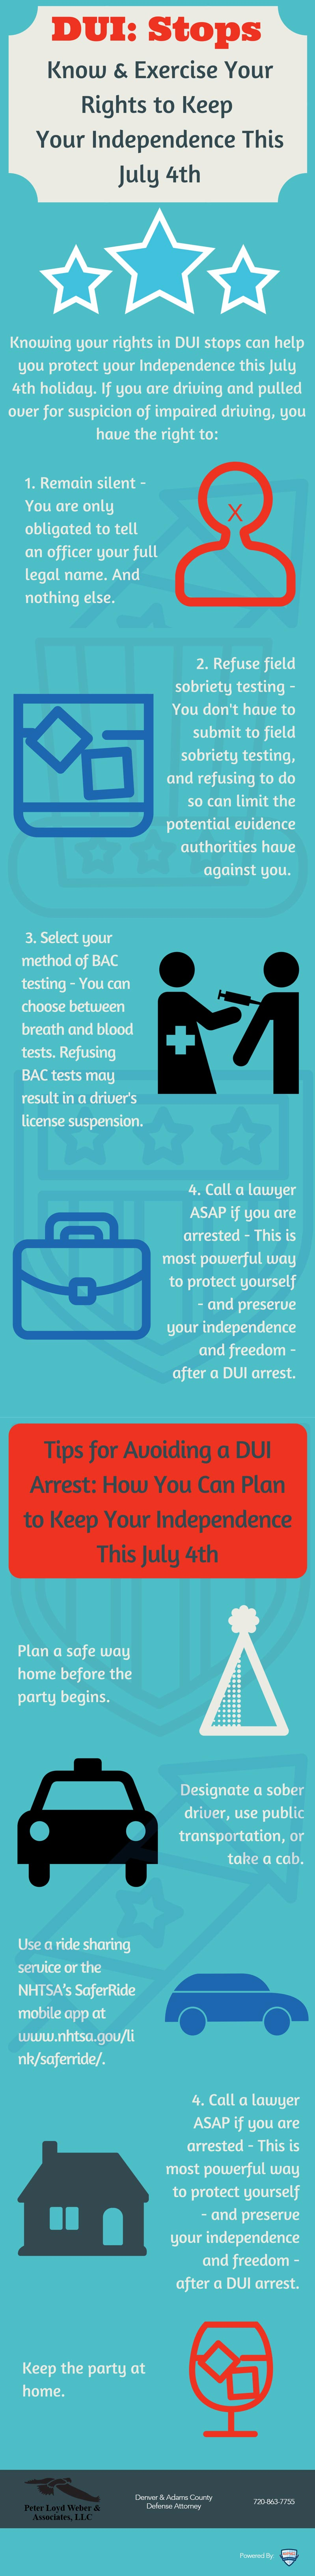 Avoid a July 4th DUI: Know Your Rights in DUI Stops [Infographic]